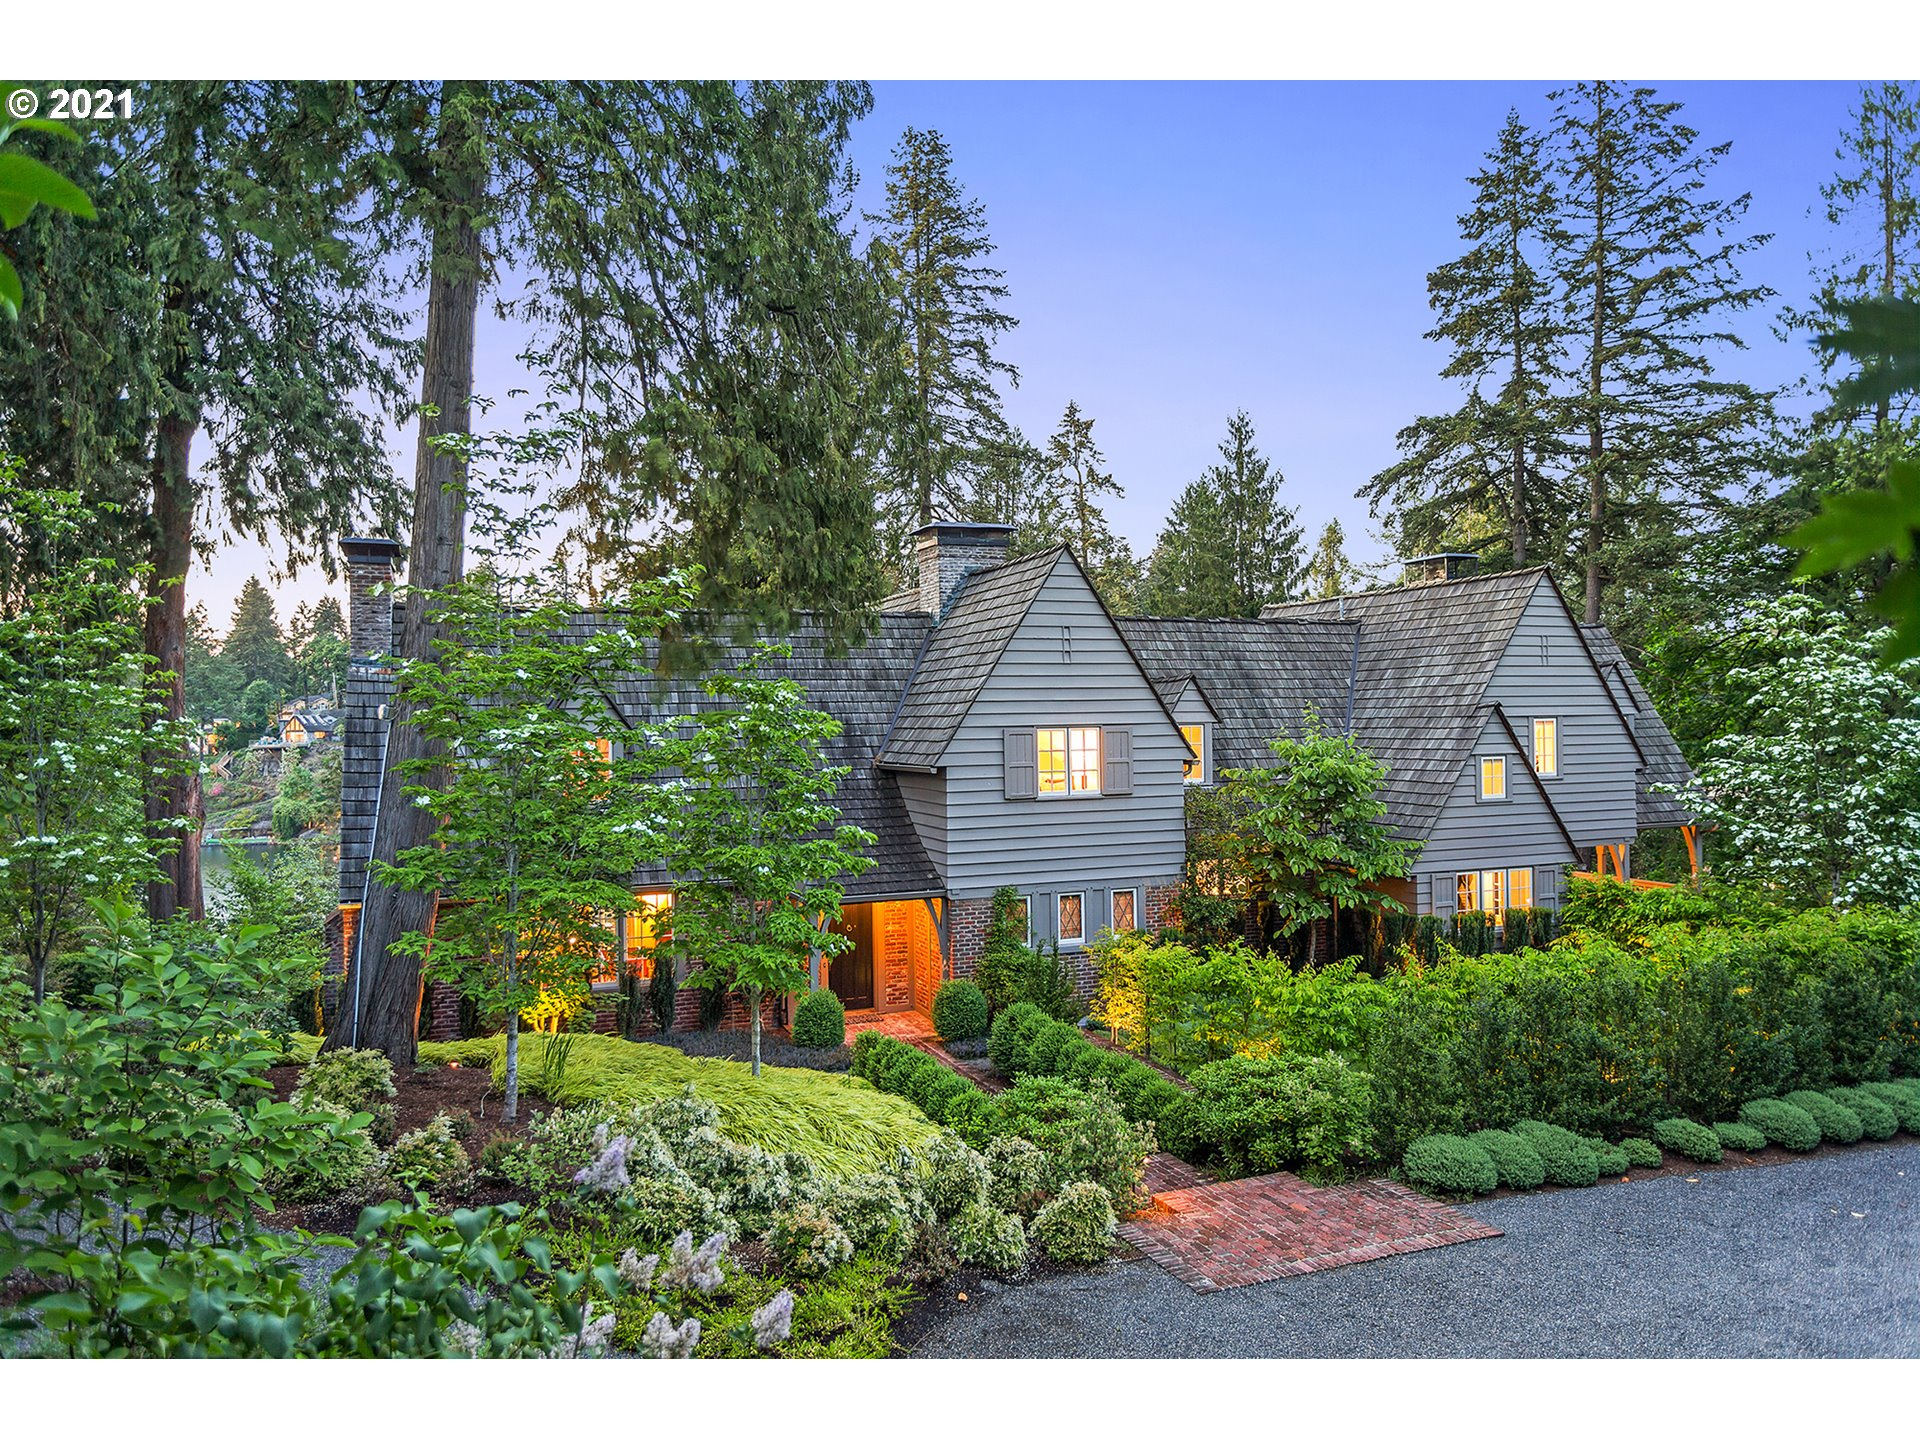 Beautiful Sundeleaf home remastered w modern sophistication. Quiet hillside location w/ views of Oswego Lake. Perfect blend of vintage details & luxe style. Spacious gmt kit w/ high-end appls, lg island. Priv mstr ste w/ spa-like en suite. Incred orig woodwork & unique architectural details thru-out. Multi living areas. Fitness rm. Storage galore. Outdr entertaining in gardens, bocce court, terraces, patios & fire pit. New Guesthouse & cantilever glass garage. Lake easement & boat slip.